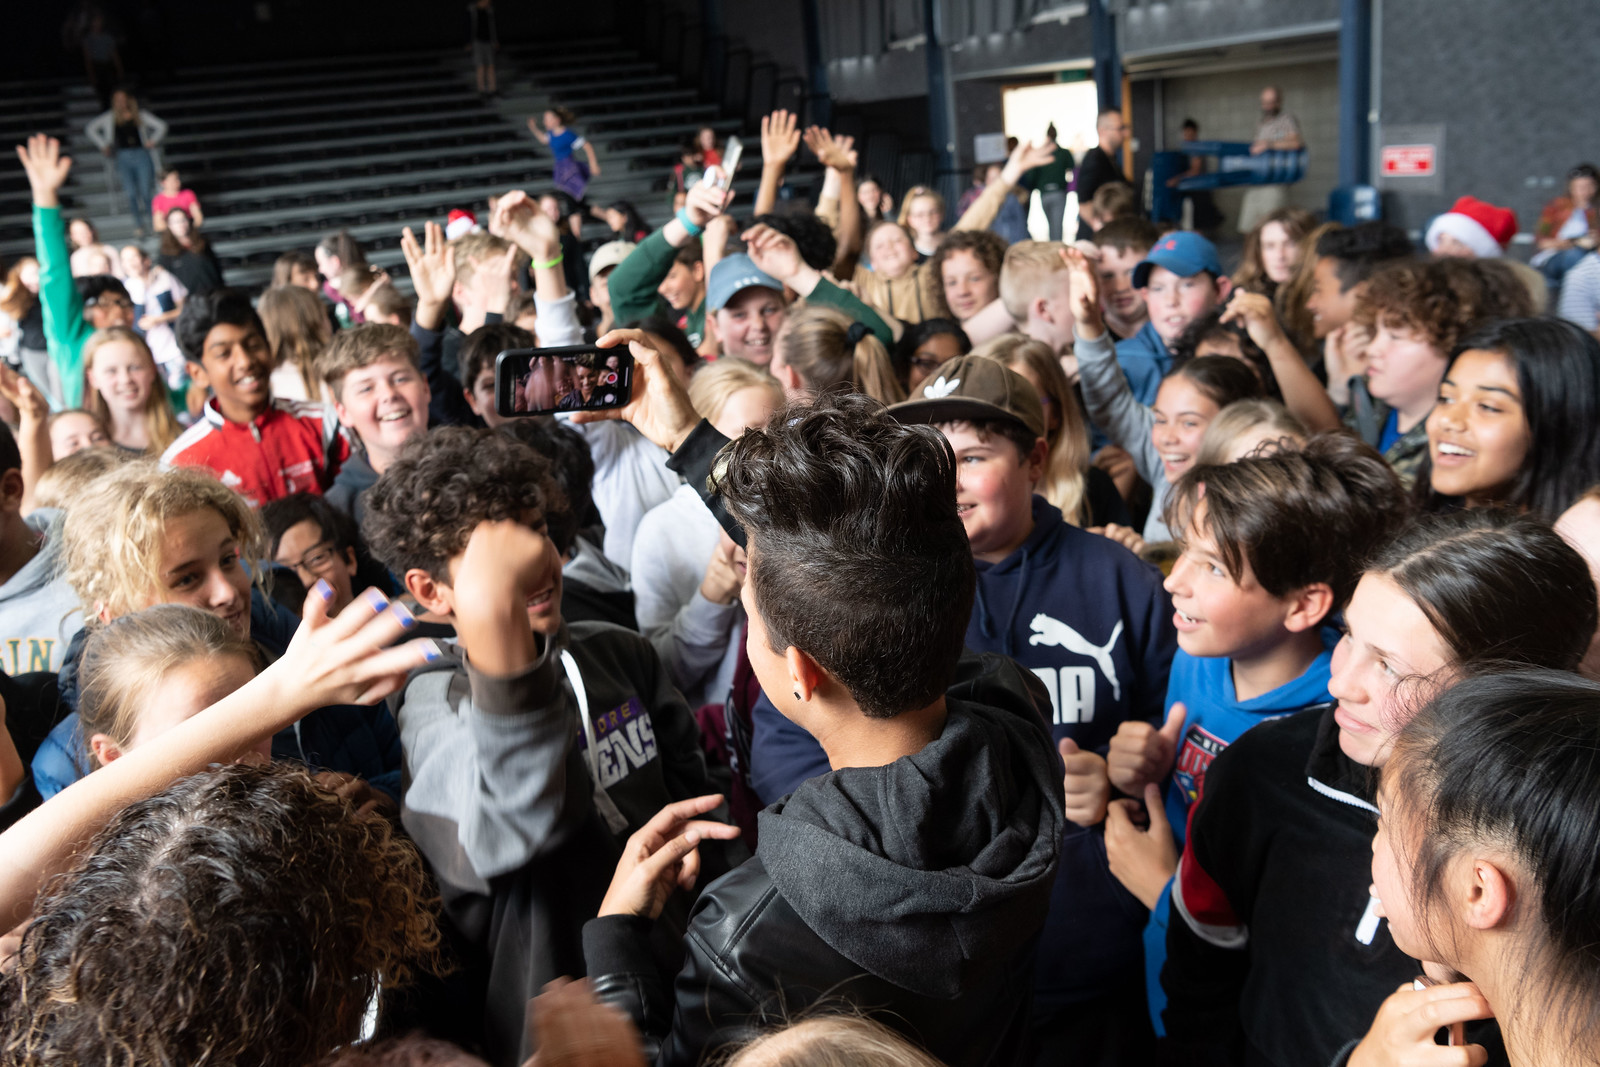 Butterscotch Clinton performance at Raroa Intermediate School, 5 December 2018. Photo credit: U.S. Department of State.